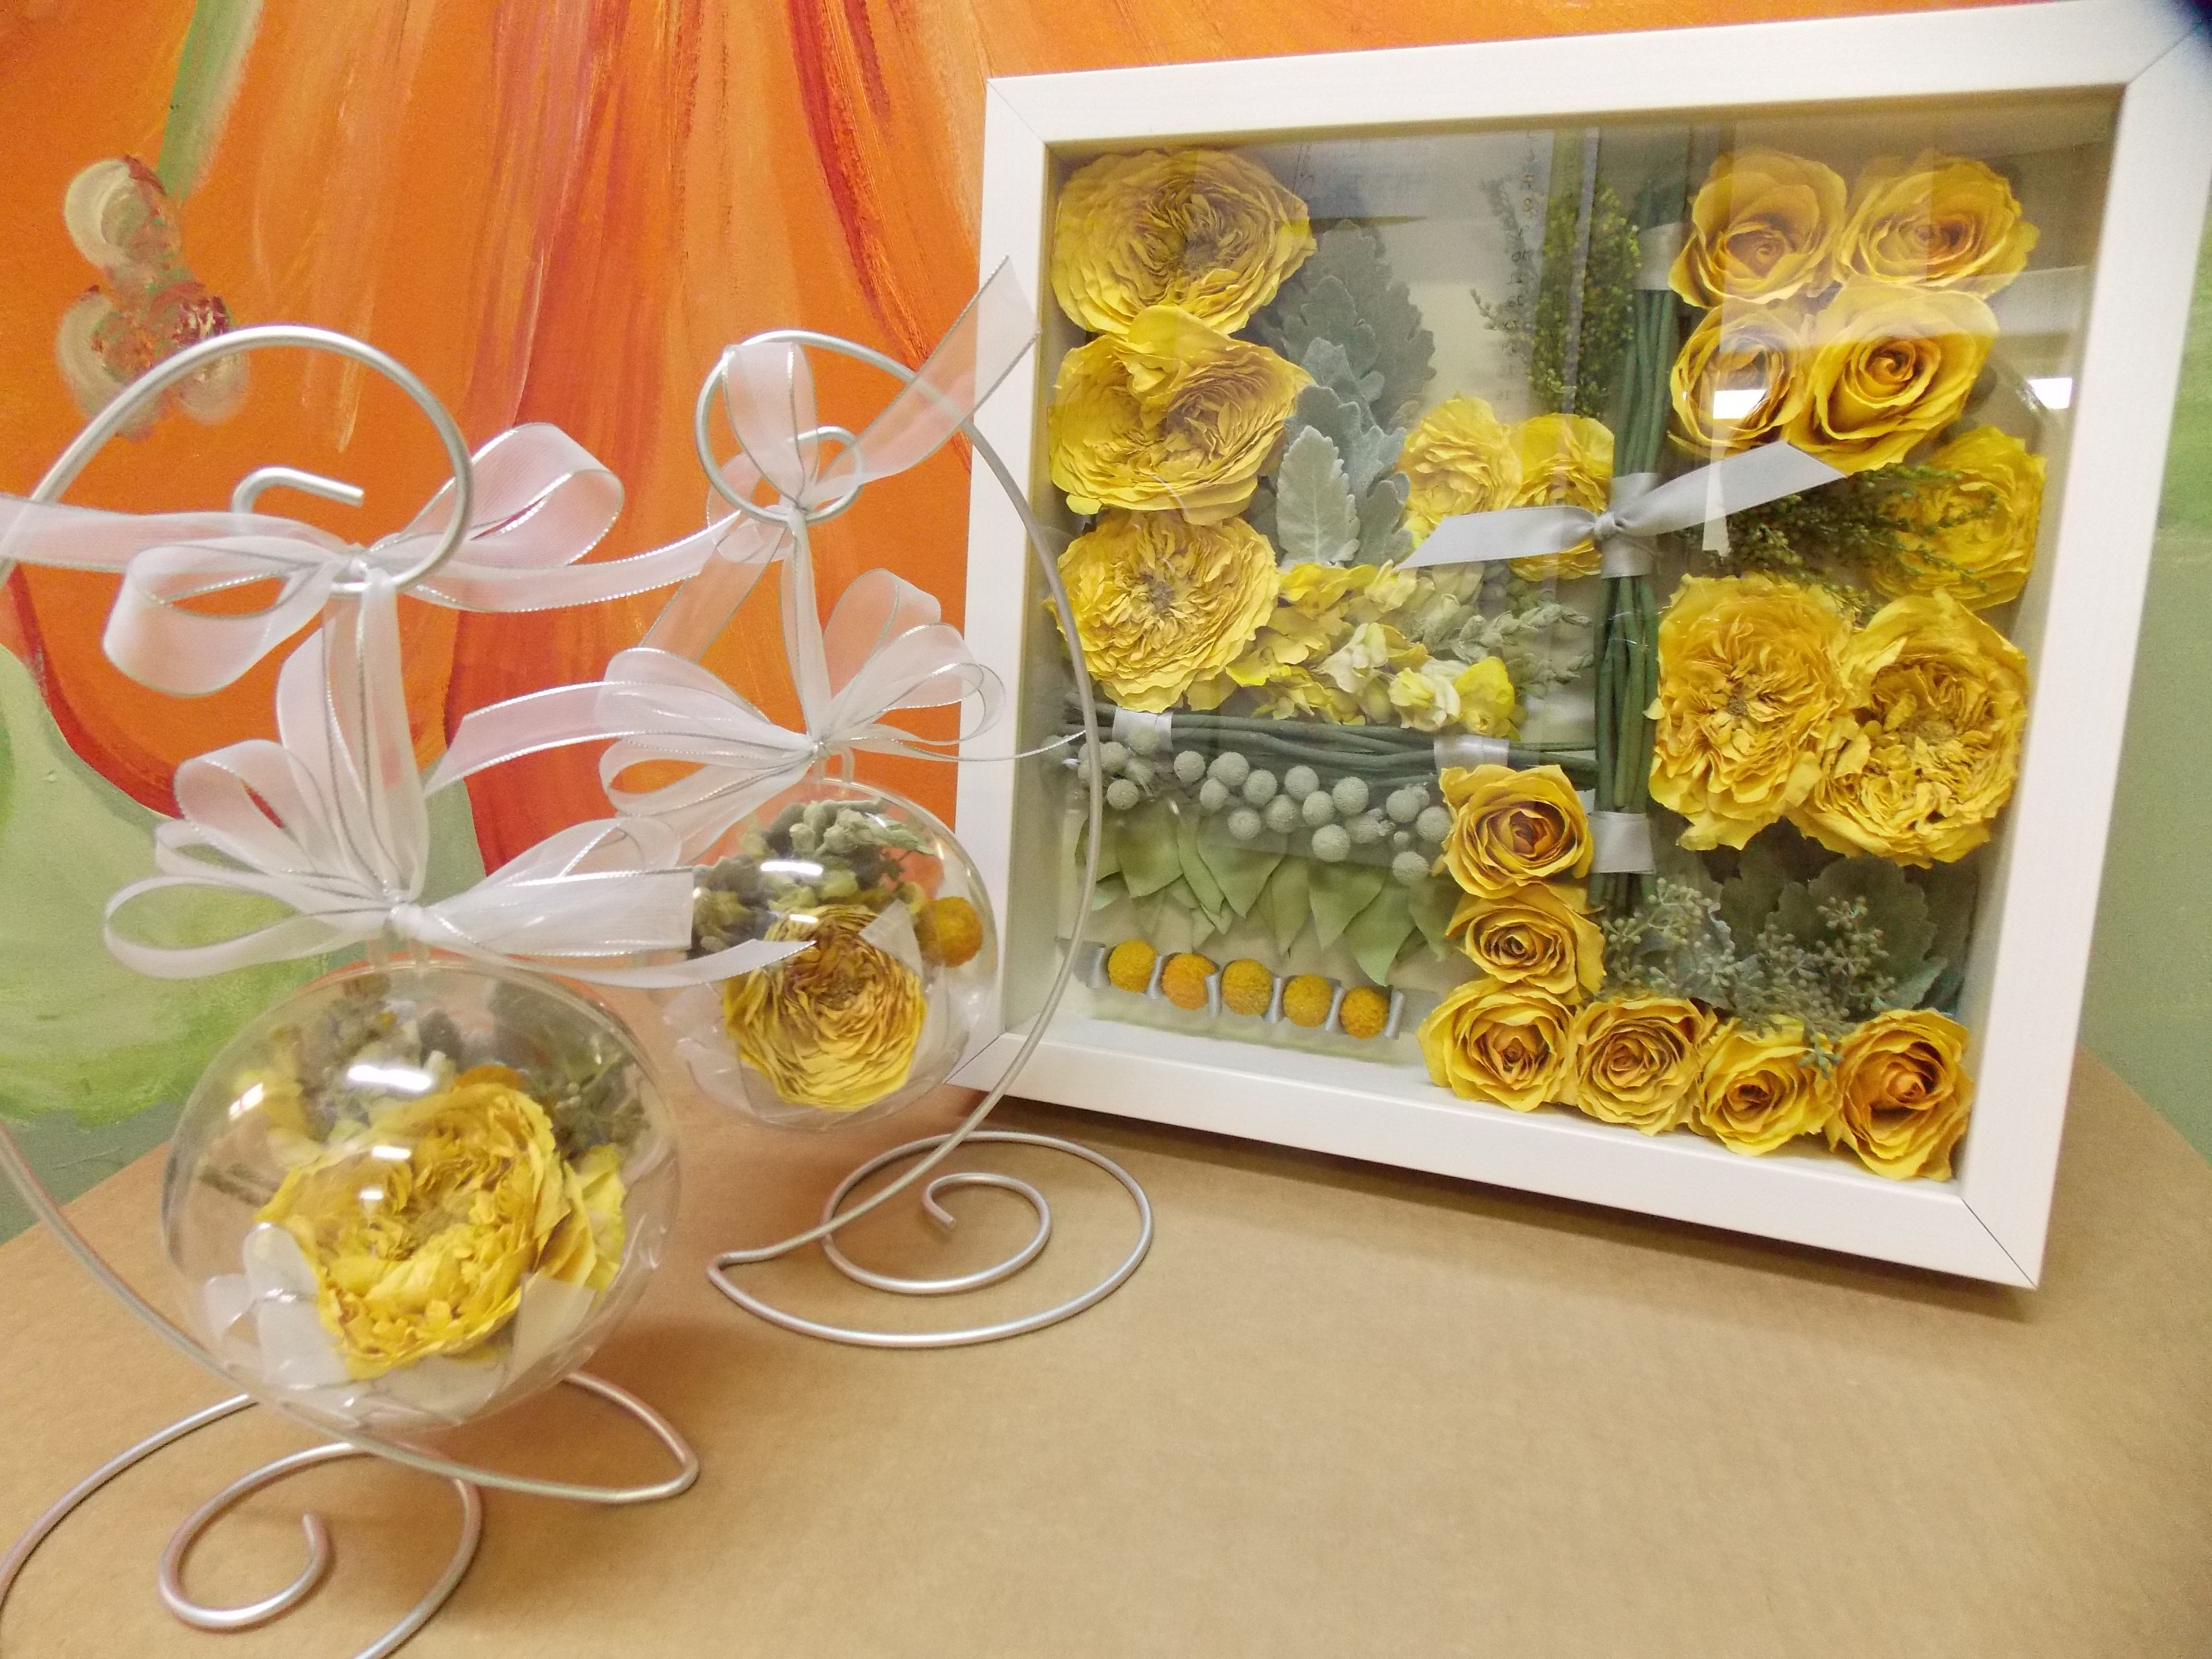 Happy Yellow dispersed among three keepsakes!  The bride's bouquet preserved for her in the white shadowbox and in two acrylic ornaments for family members.